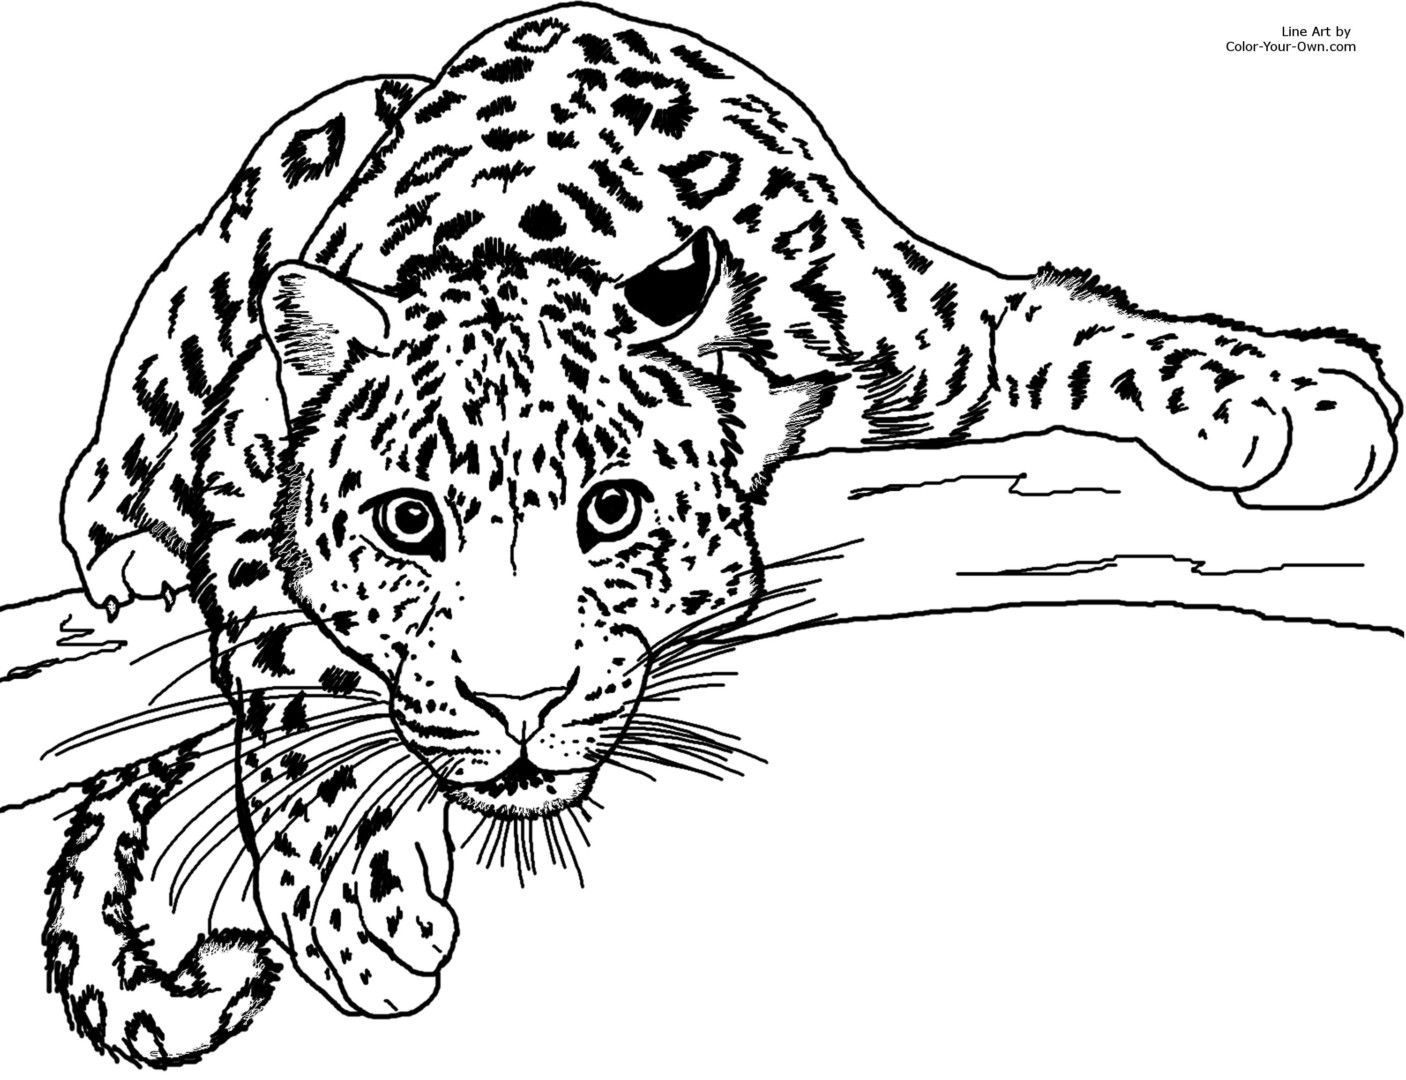 coloring for children leopard sducartelca scarecrow color by number kids sheets trucks coloring pages Leopard Coloring Page